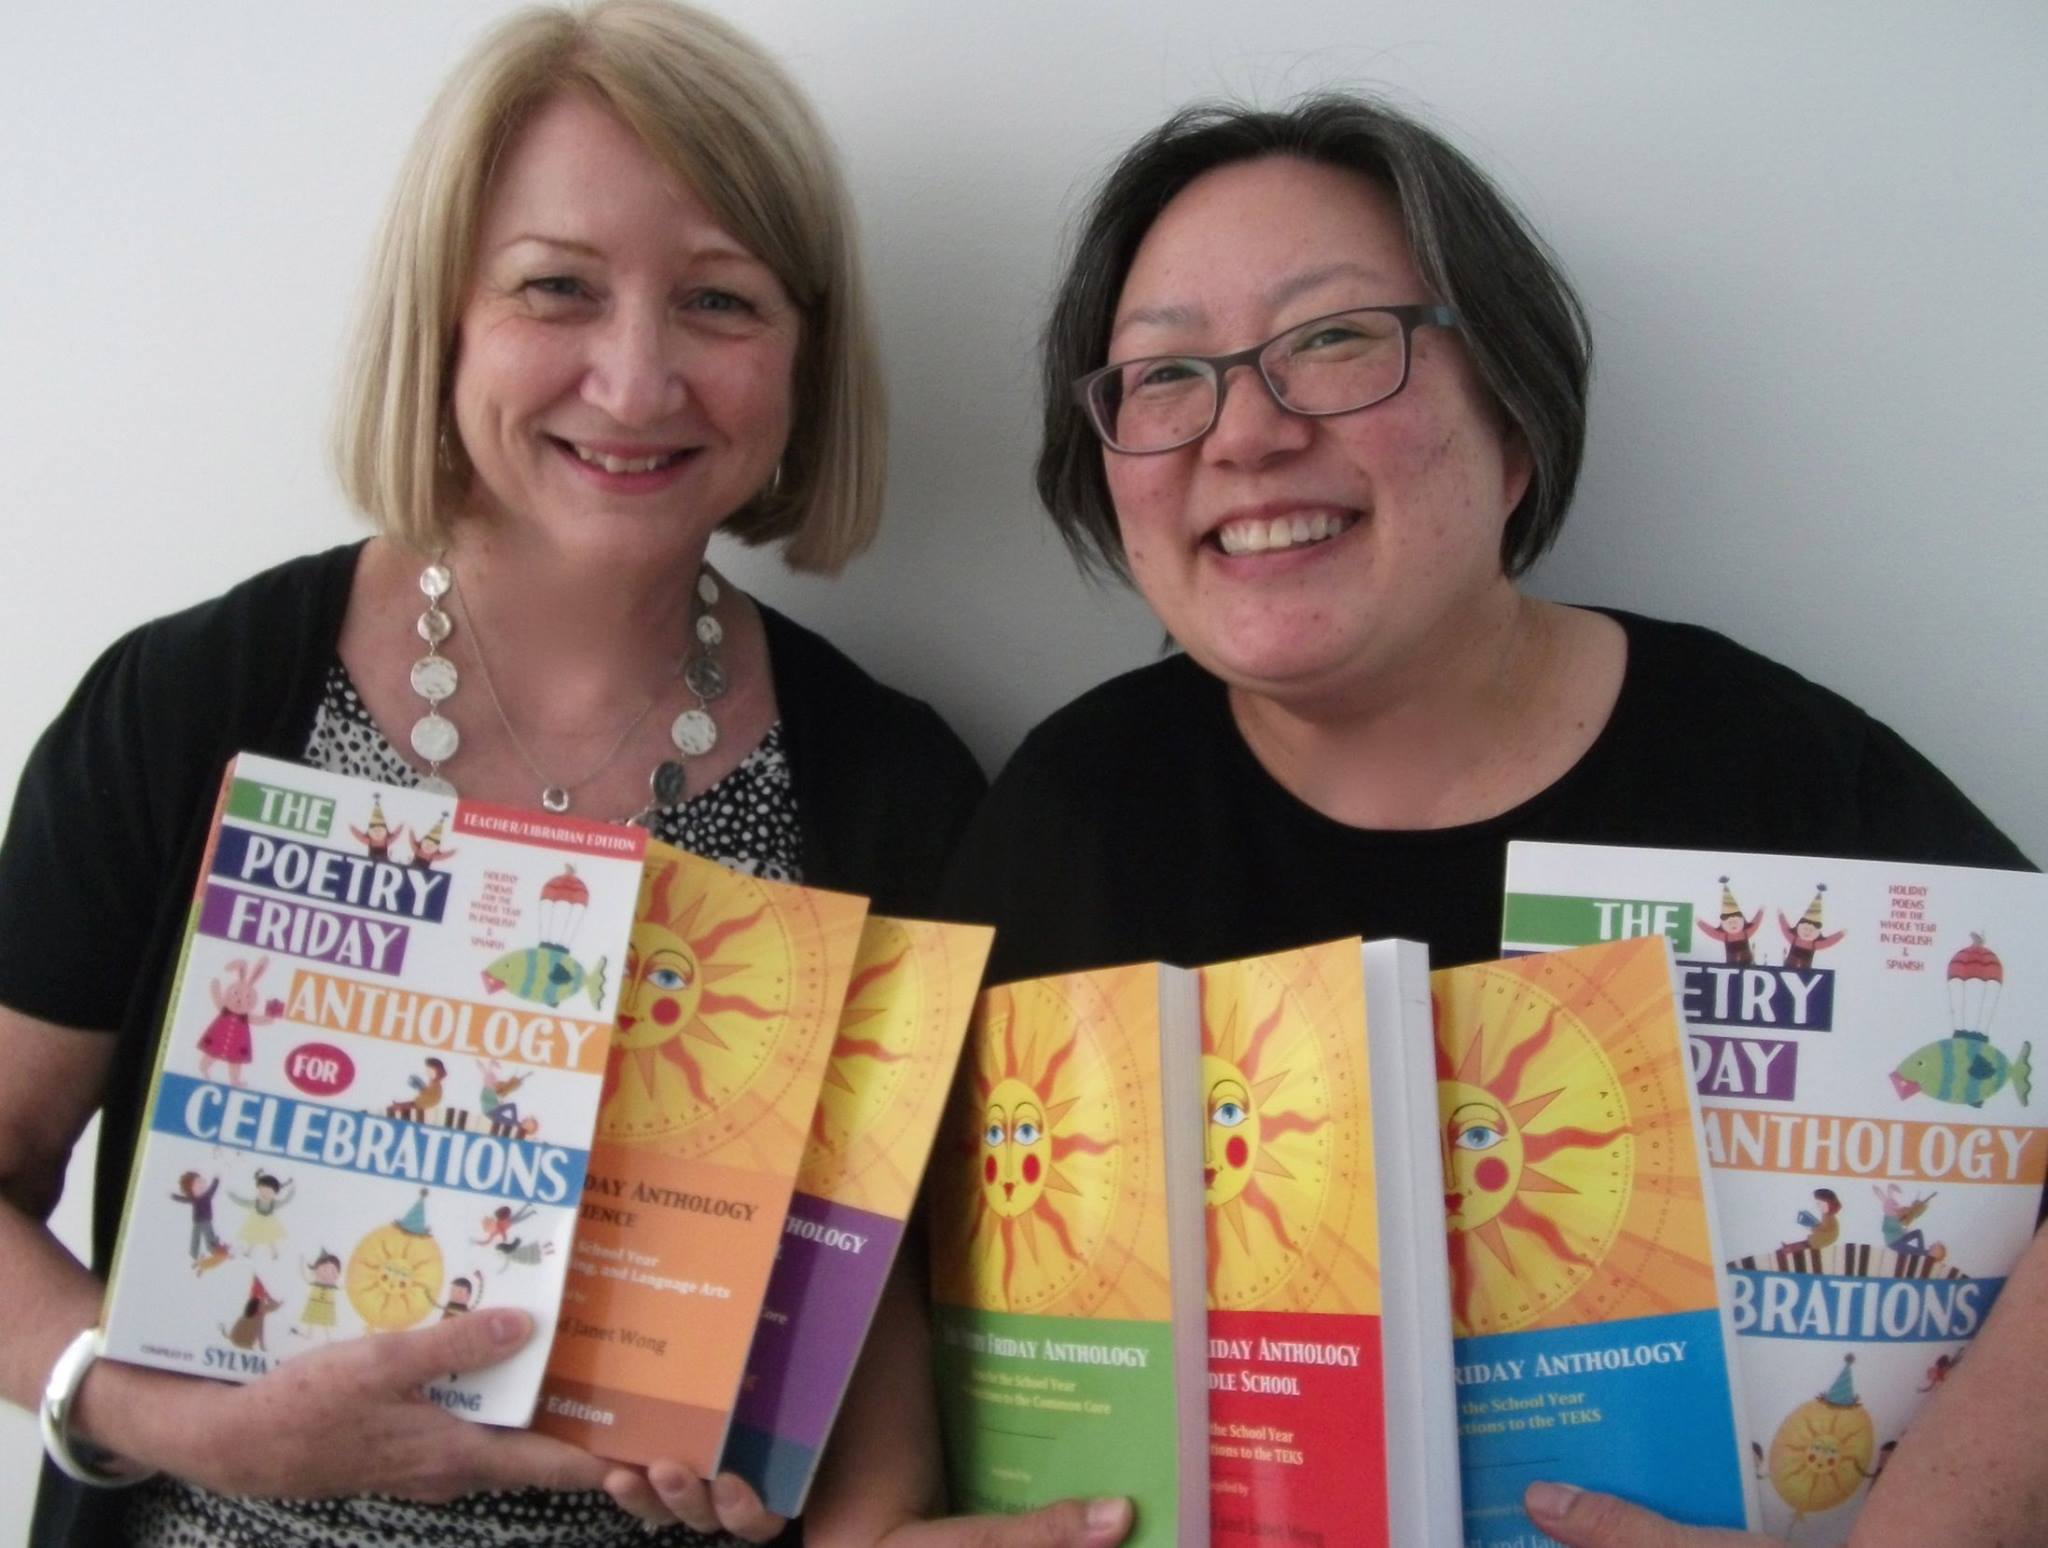 THE POETRY FRIDAY POWER BOOKS by Sylvia Vardell & Janet Wong – Renee